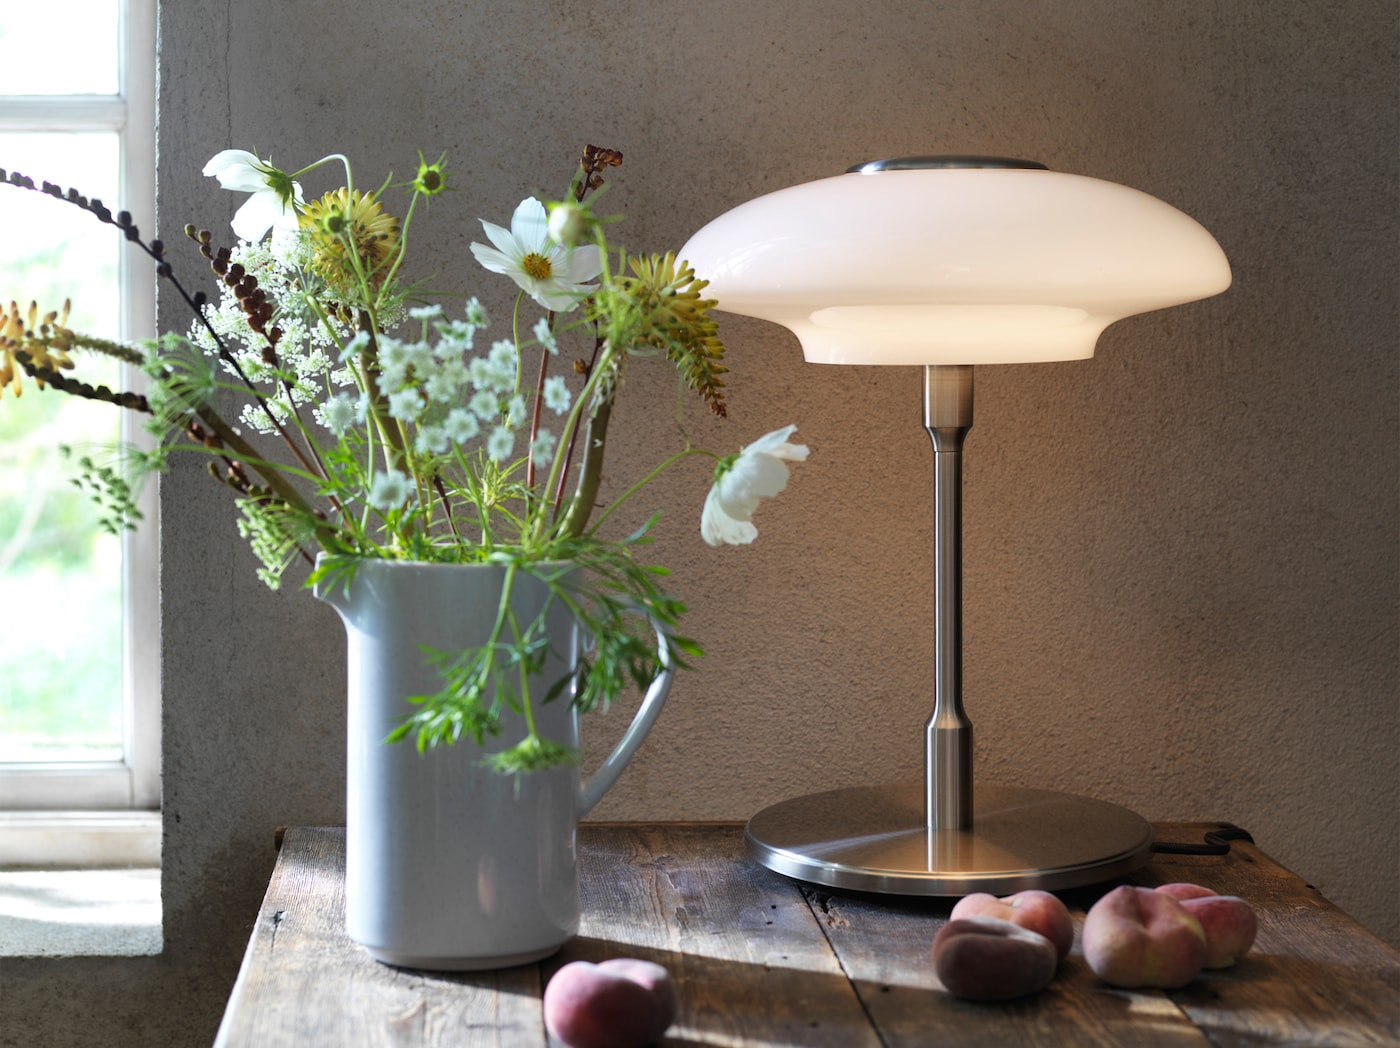 TÄLLBYN table lamp designed with Art Deco inspiration placed on a wooden table with a jug of flowers and peaches.